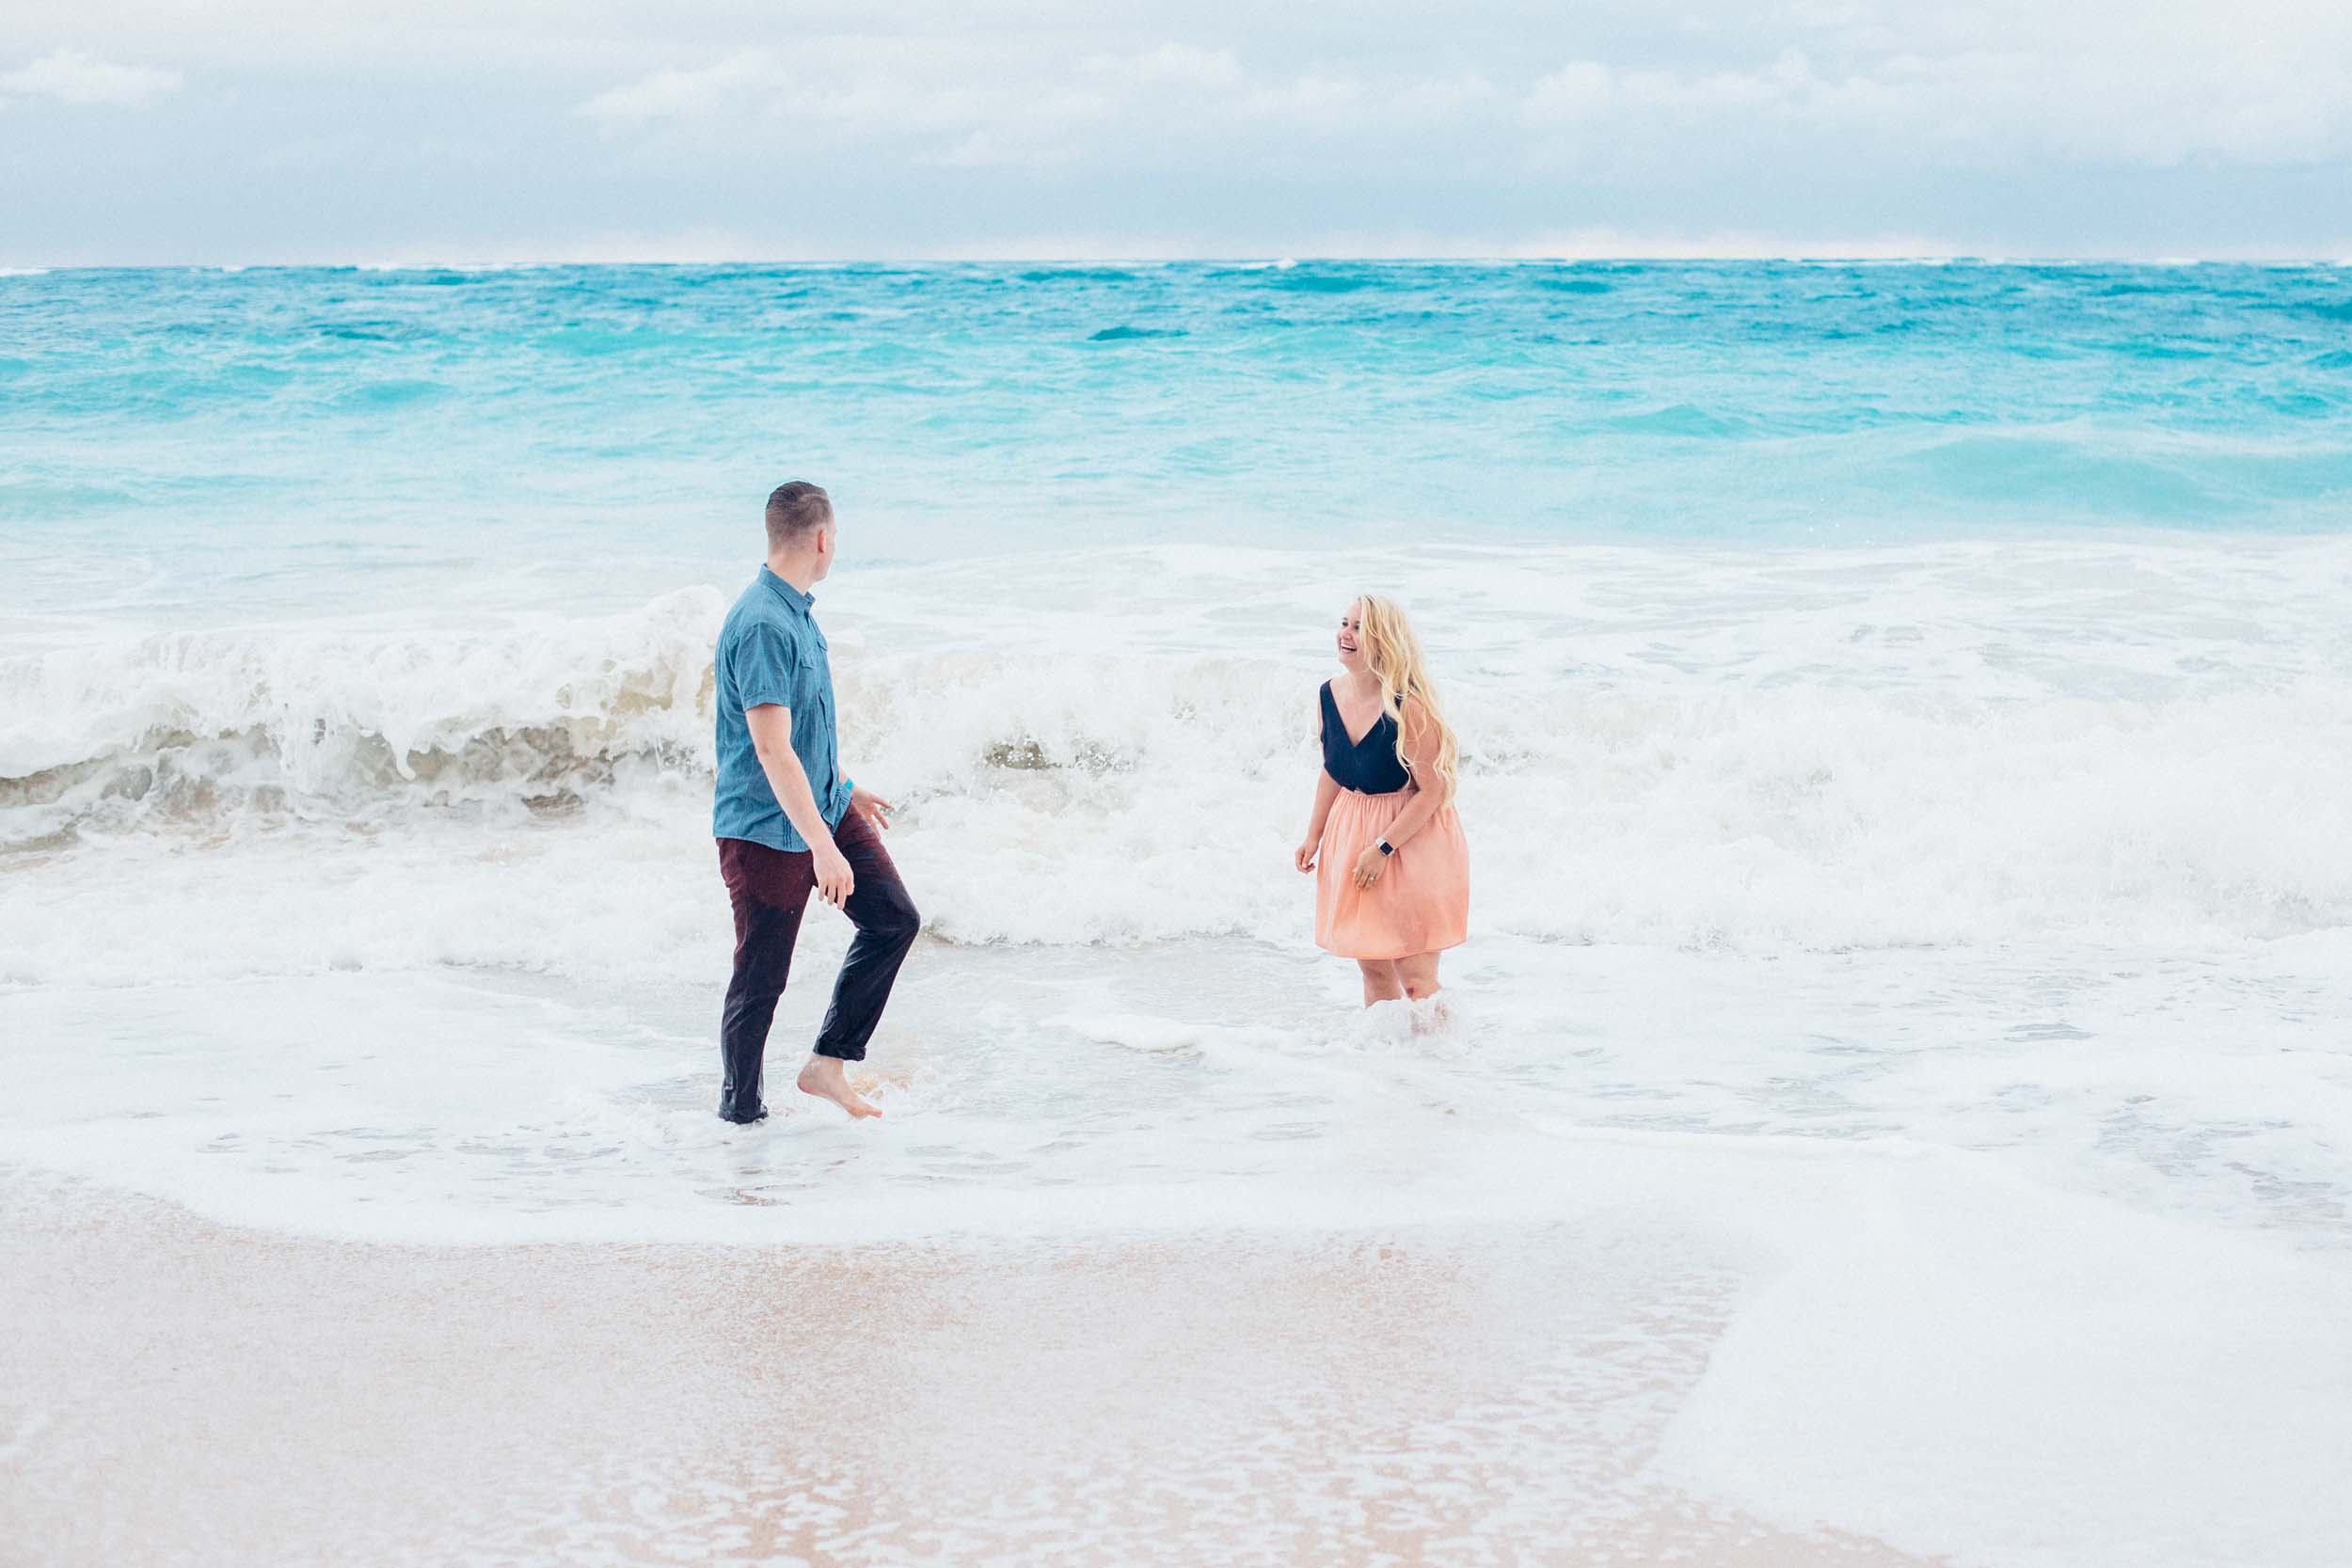 Couple playing in the shallow waves together in Maui, Hawaii USA